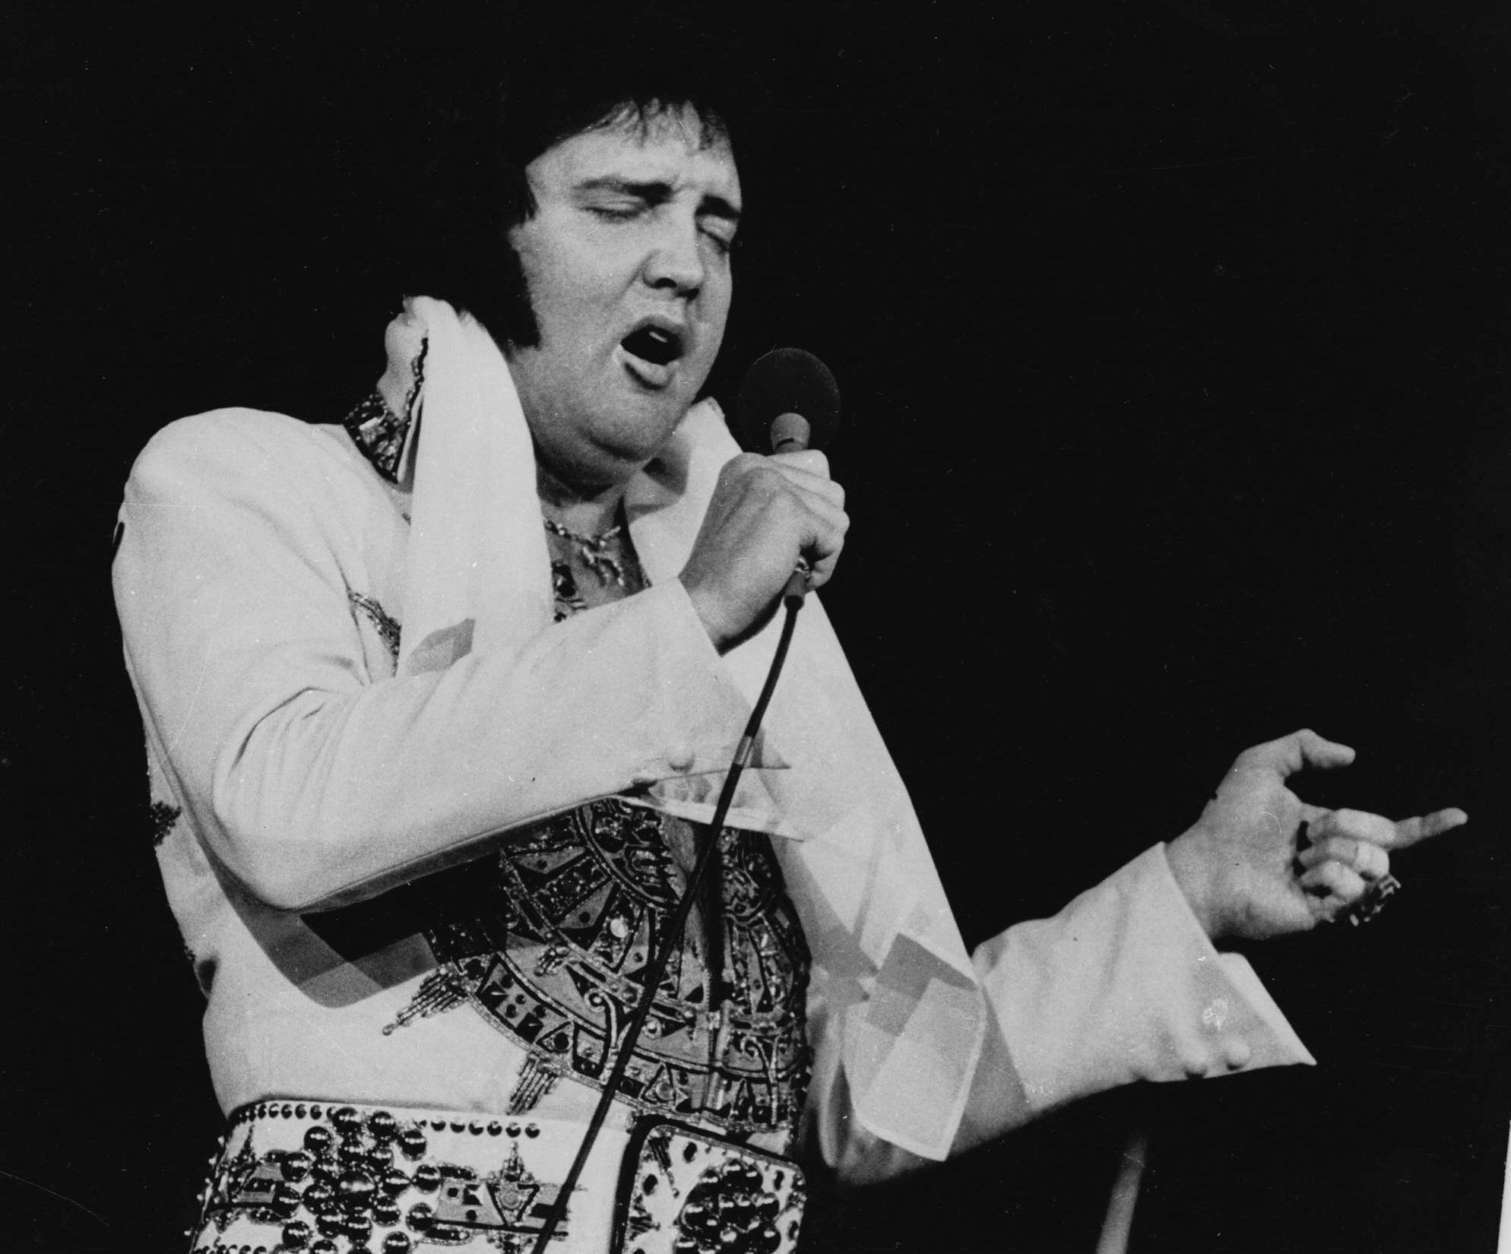 Elvis Presley is shown performing in Providence, R.I. on May 23, 1977, three months before his death. (AP Photo)